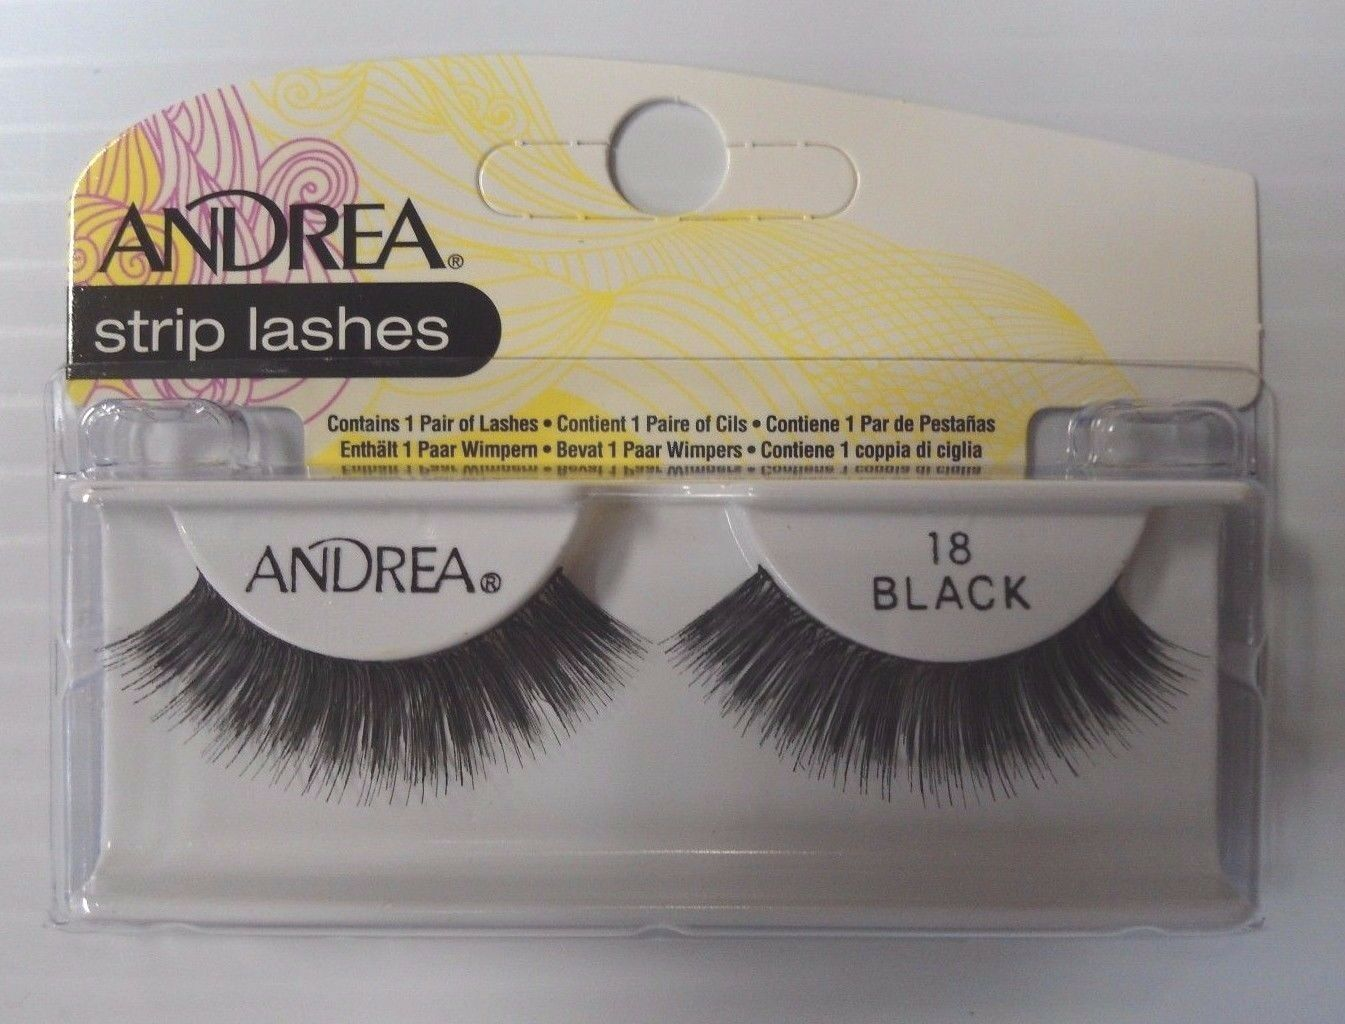 Primary image for Andrea's Strip Lashes Fashion Eye Lash Style 18 Black - (Pack of 6)